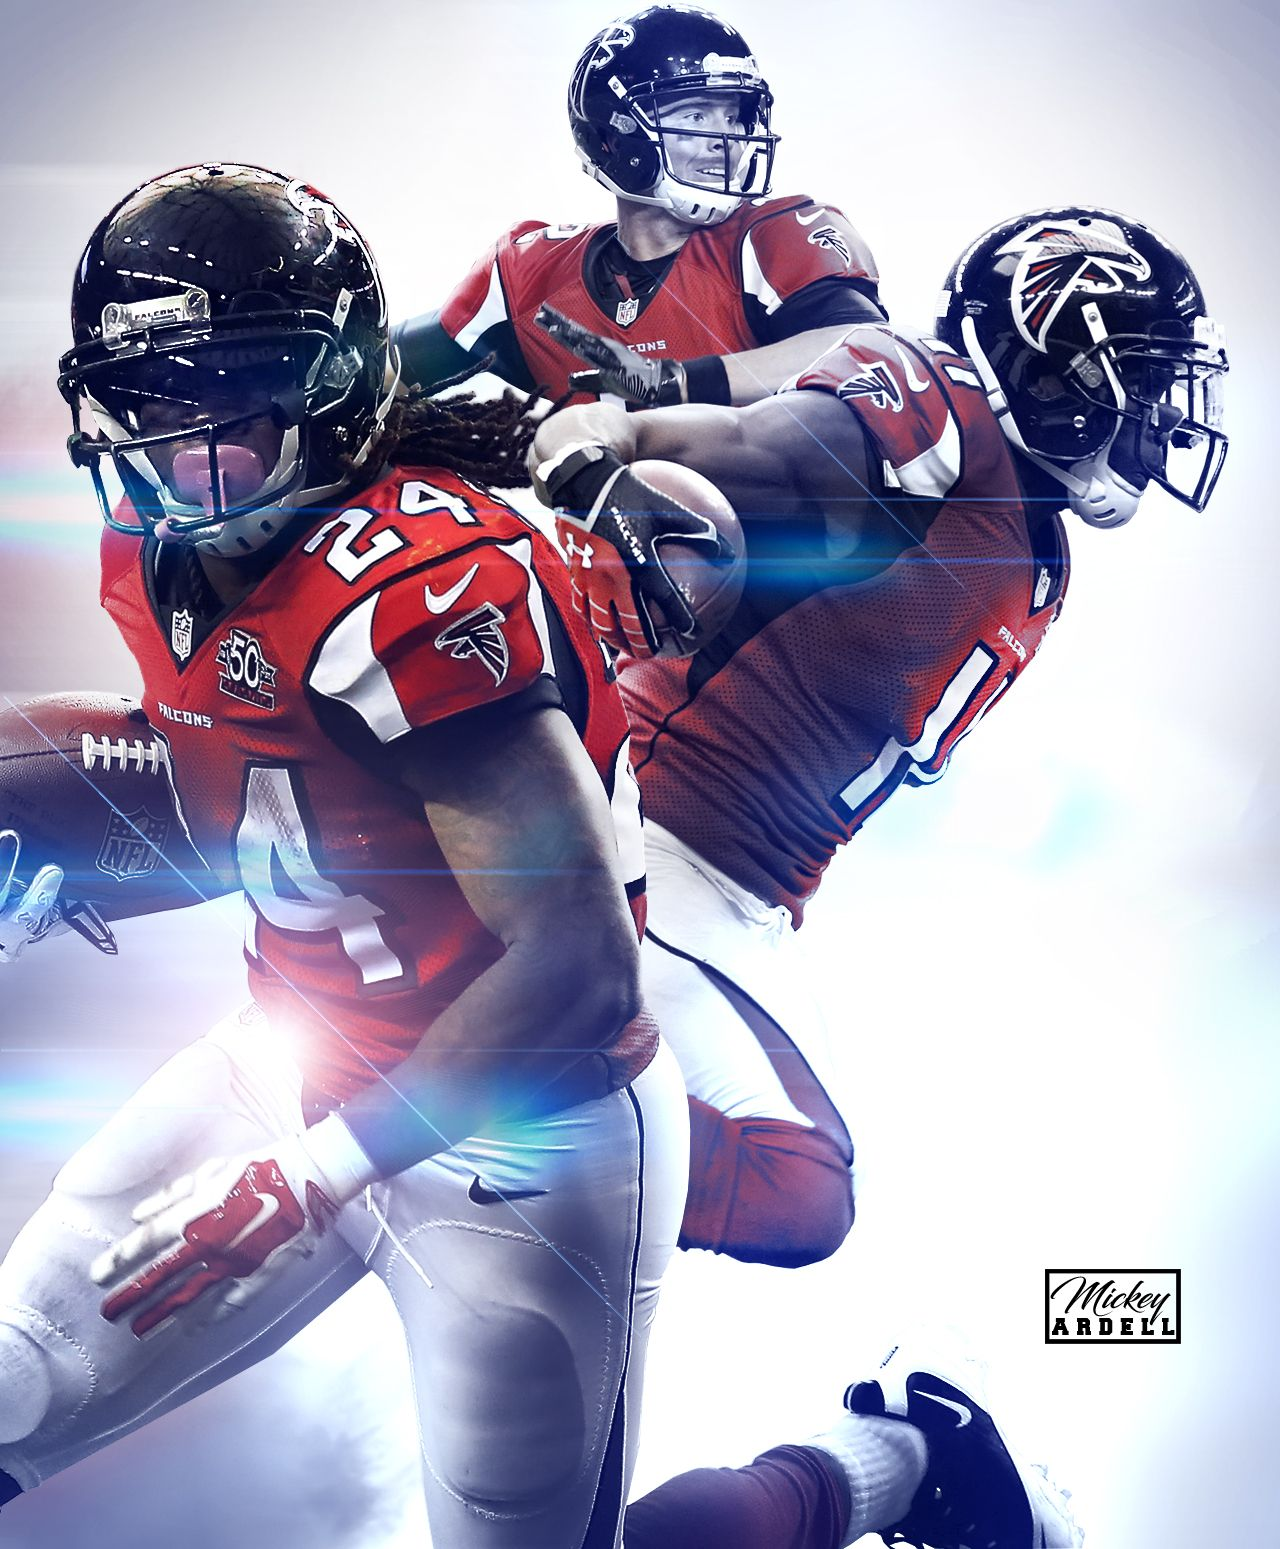 Atlanta Falcons Devonta Freeman Julio Jones Nfl Wmcskills Atlanta Falcons Football Atlanta Falcons Art Atlanta Falcons Fans